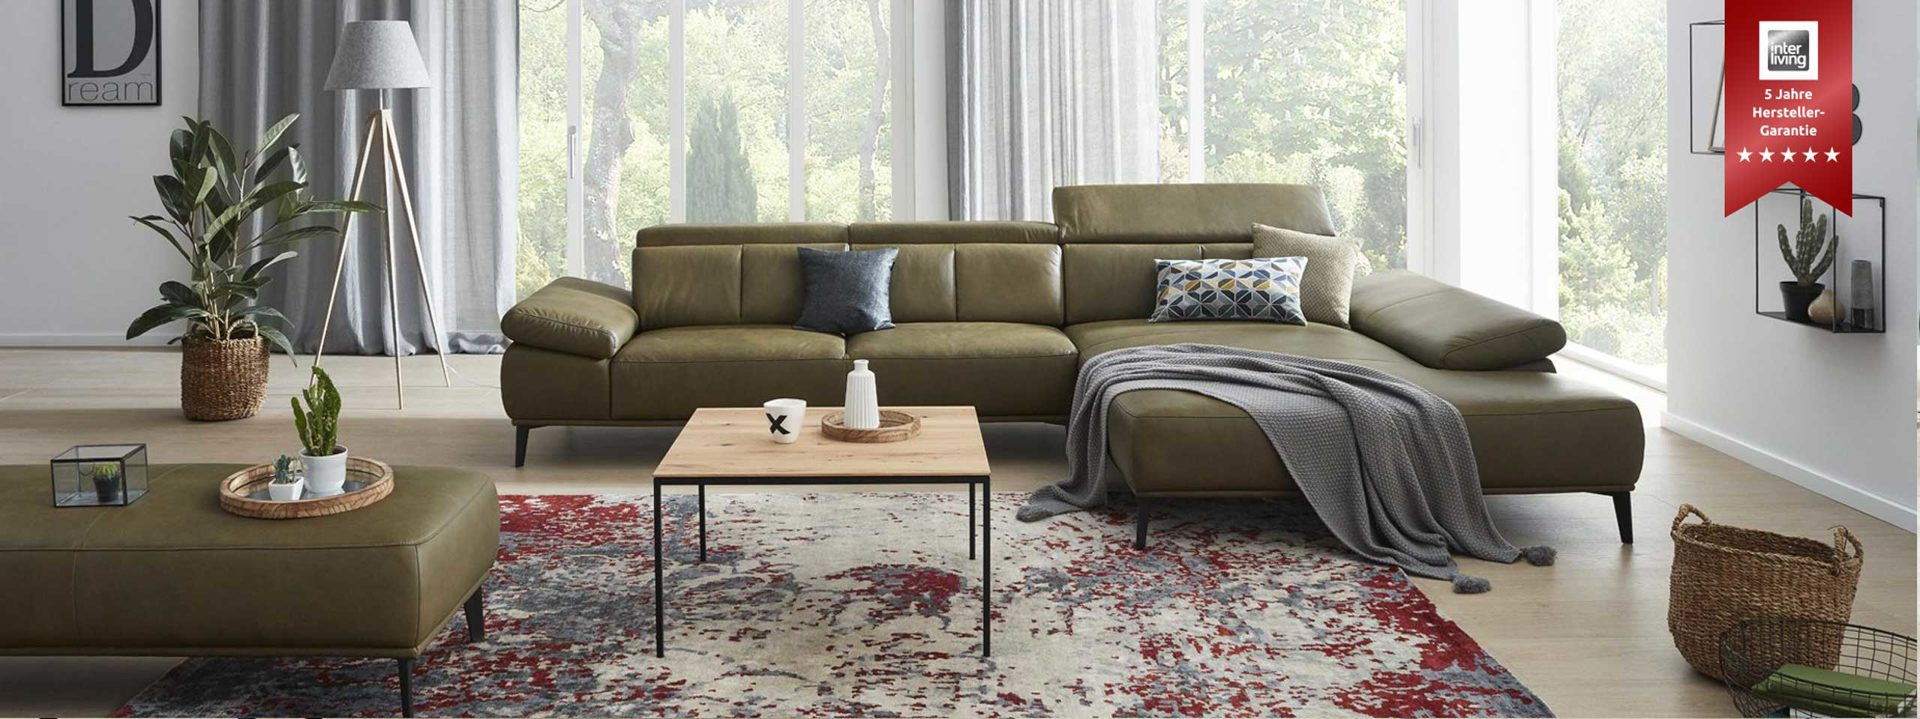 Interliving Sofa Serie 4002 HF Ecksofa Highlight